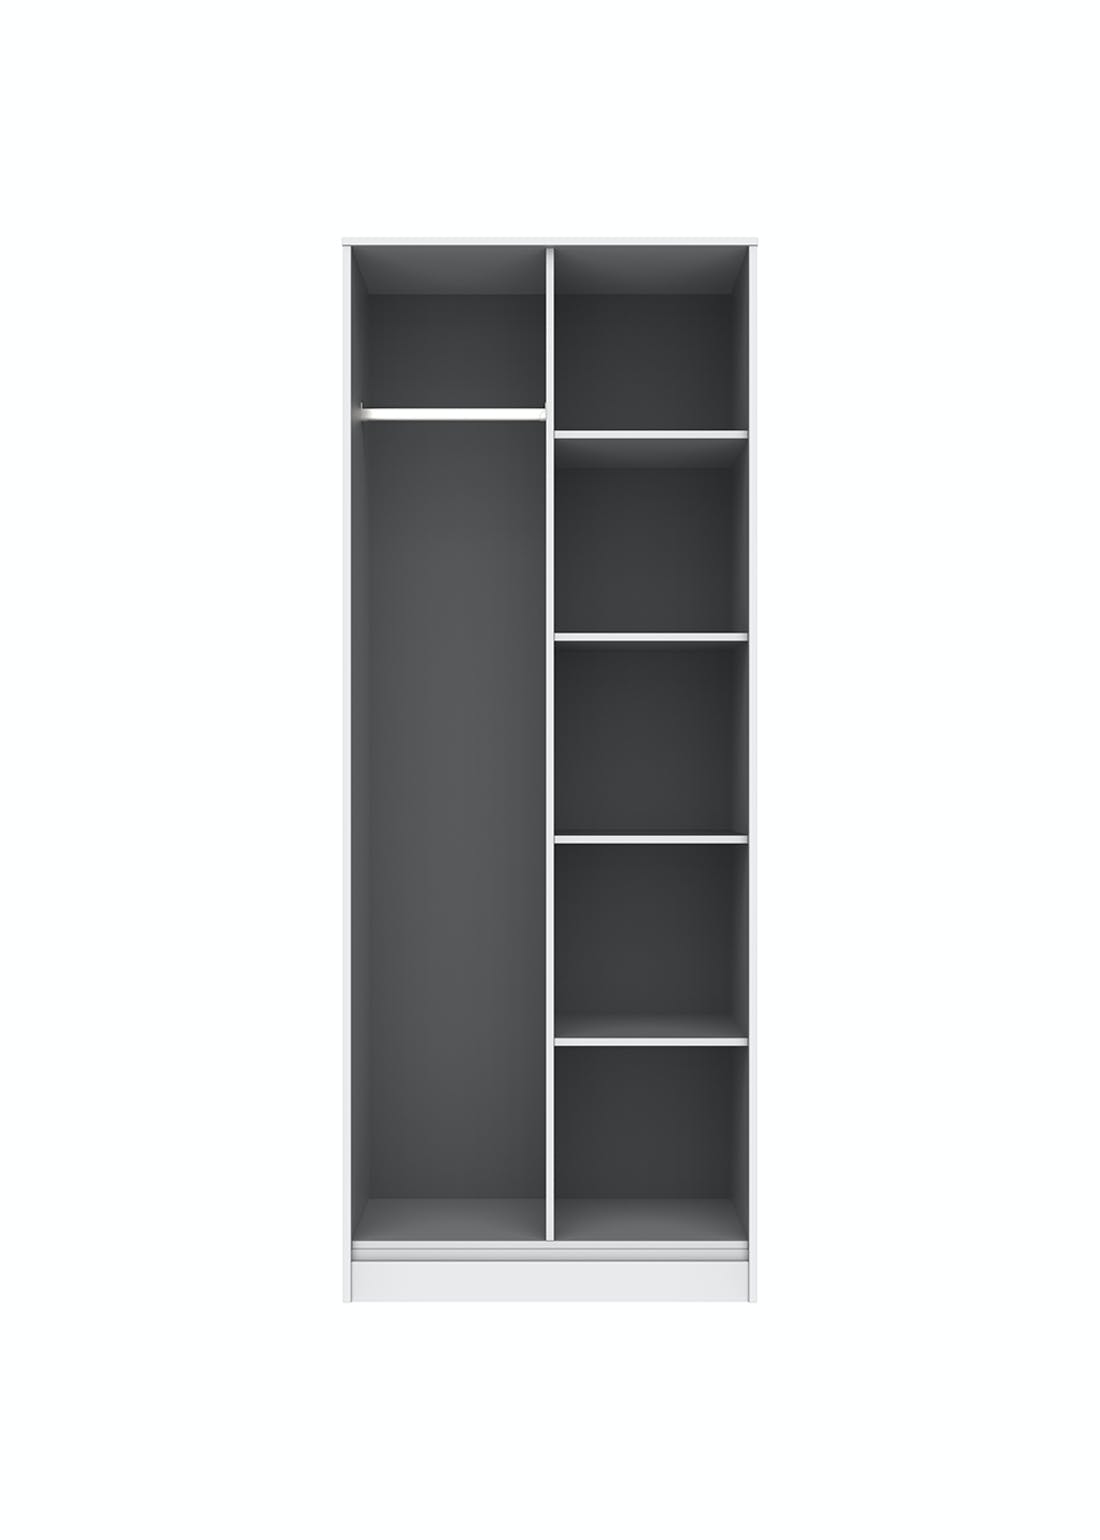 Swift Prism Open Shelf Wardrobe (201.5cm x 76.5cm x 53cm)